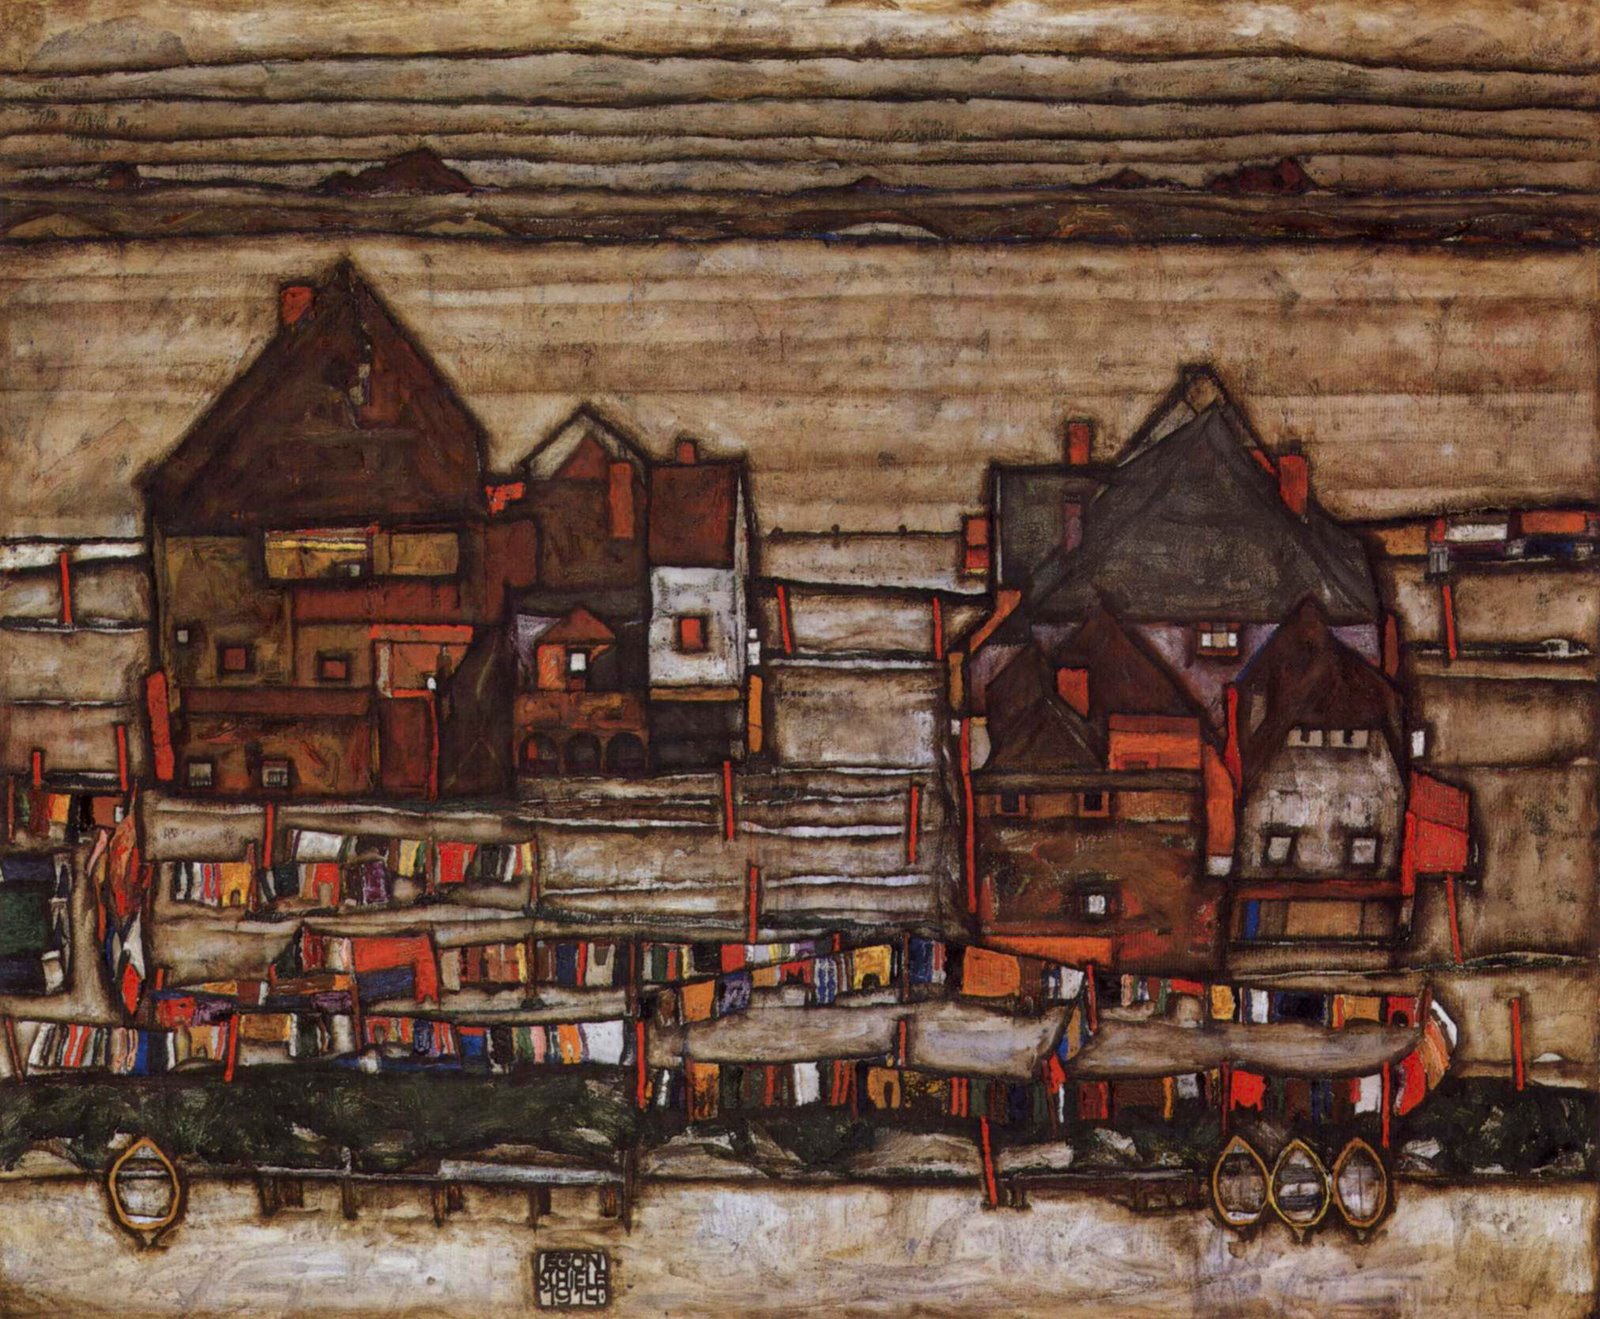 Egon Schiele's Houses with Colorful Laundry (Suburb II)